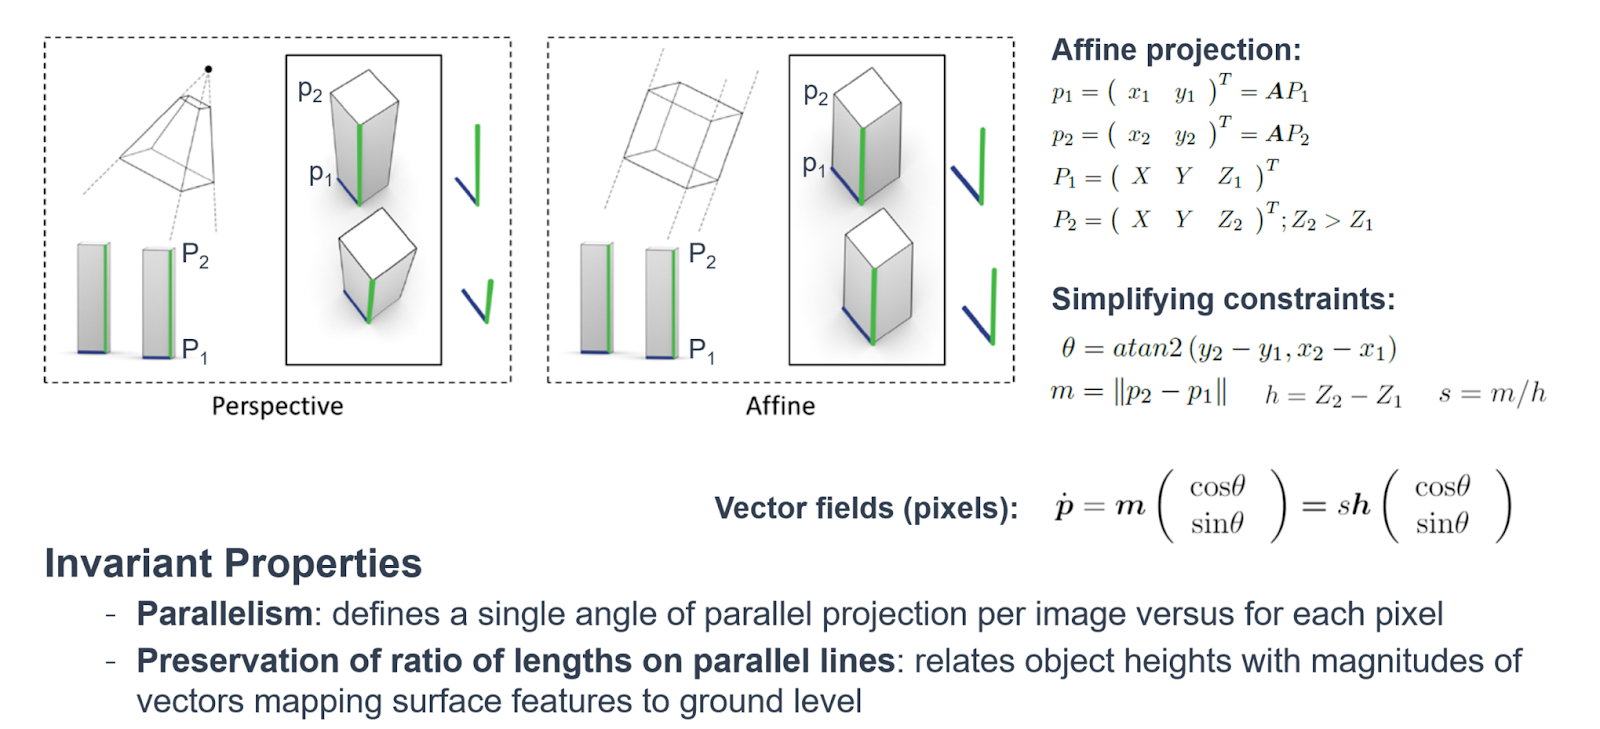 Affine projection properties.